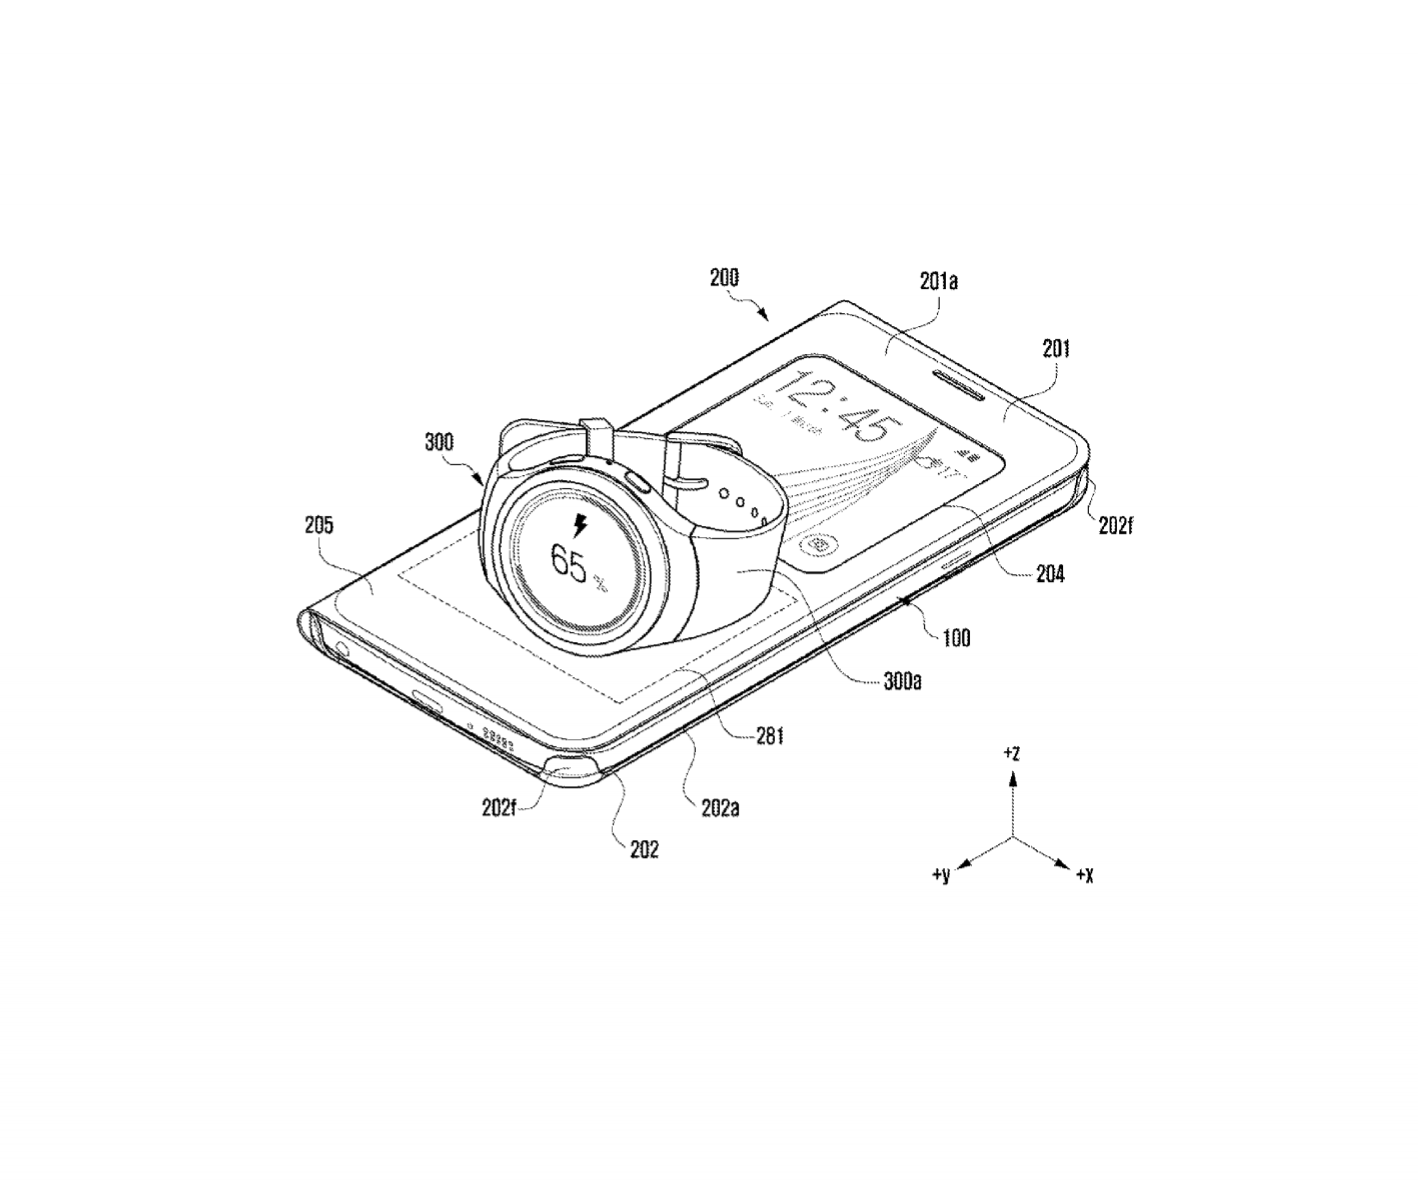 Samsung Files Patent For Wireless Charging Cases